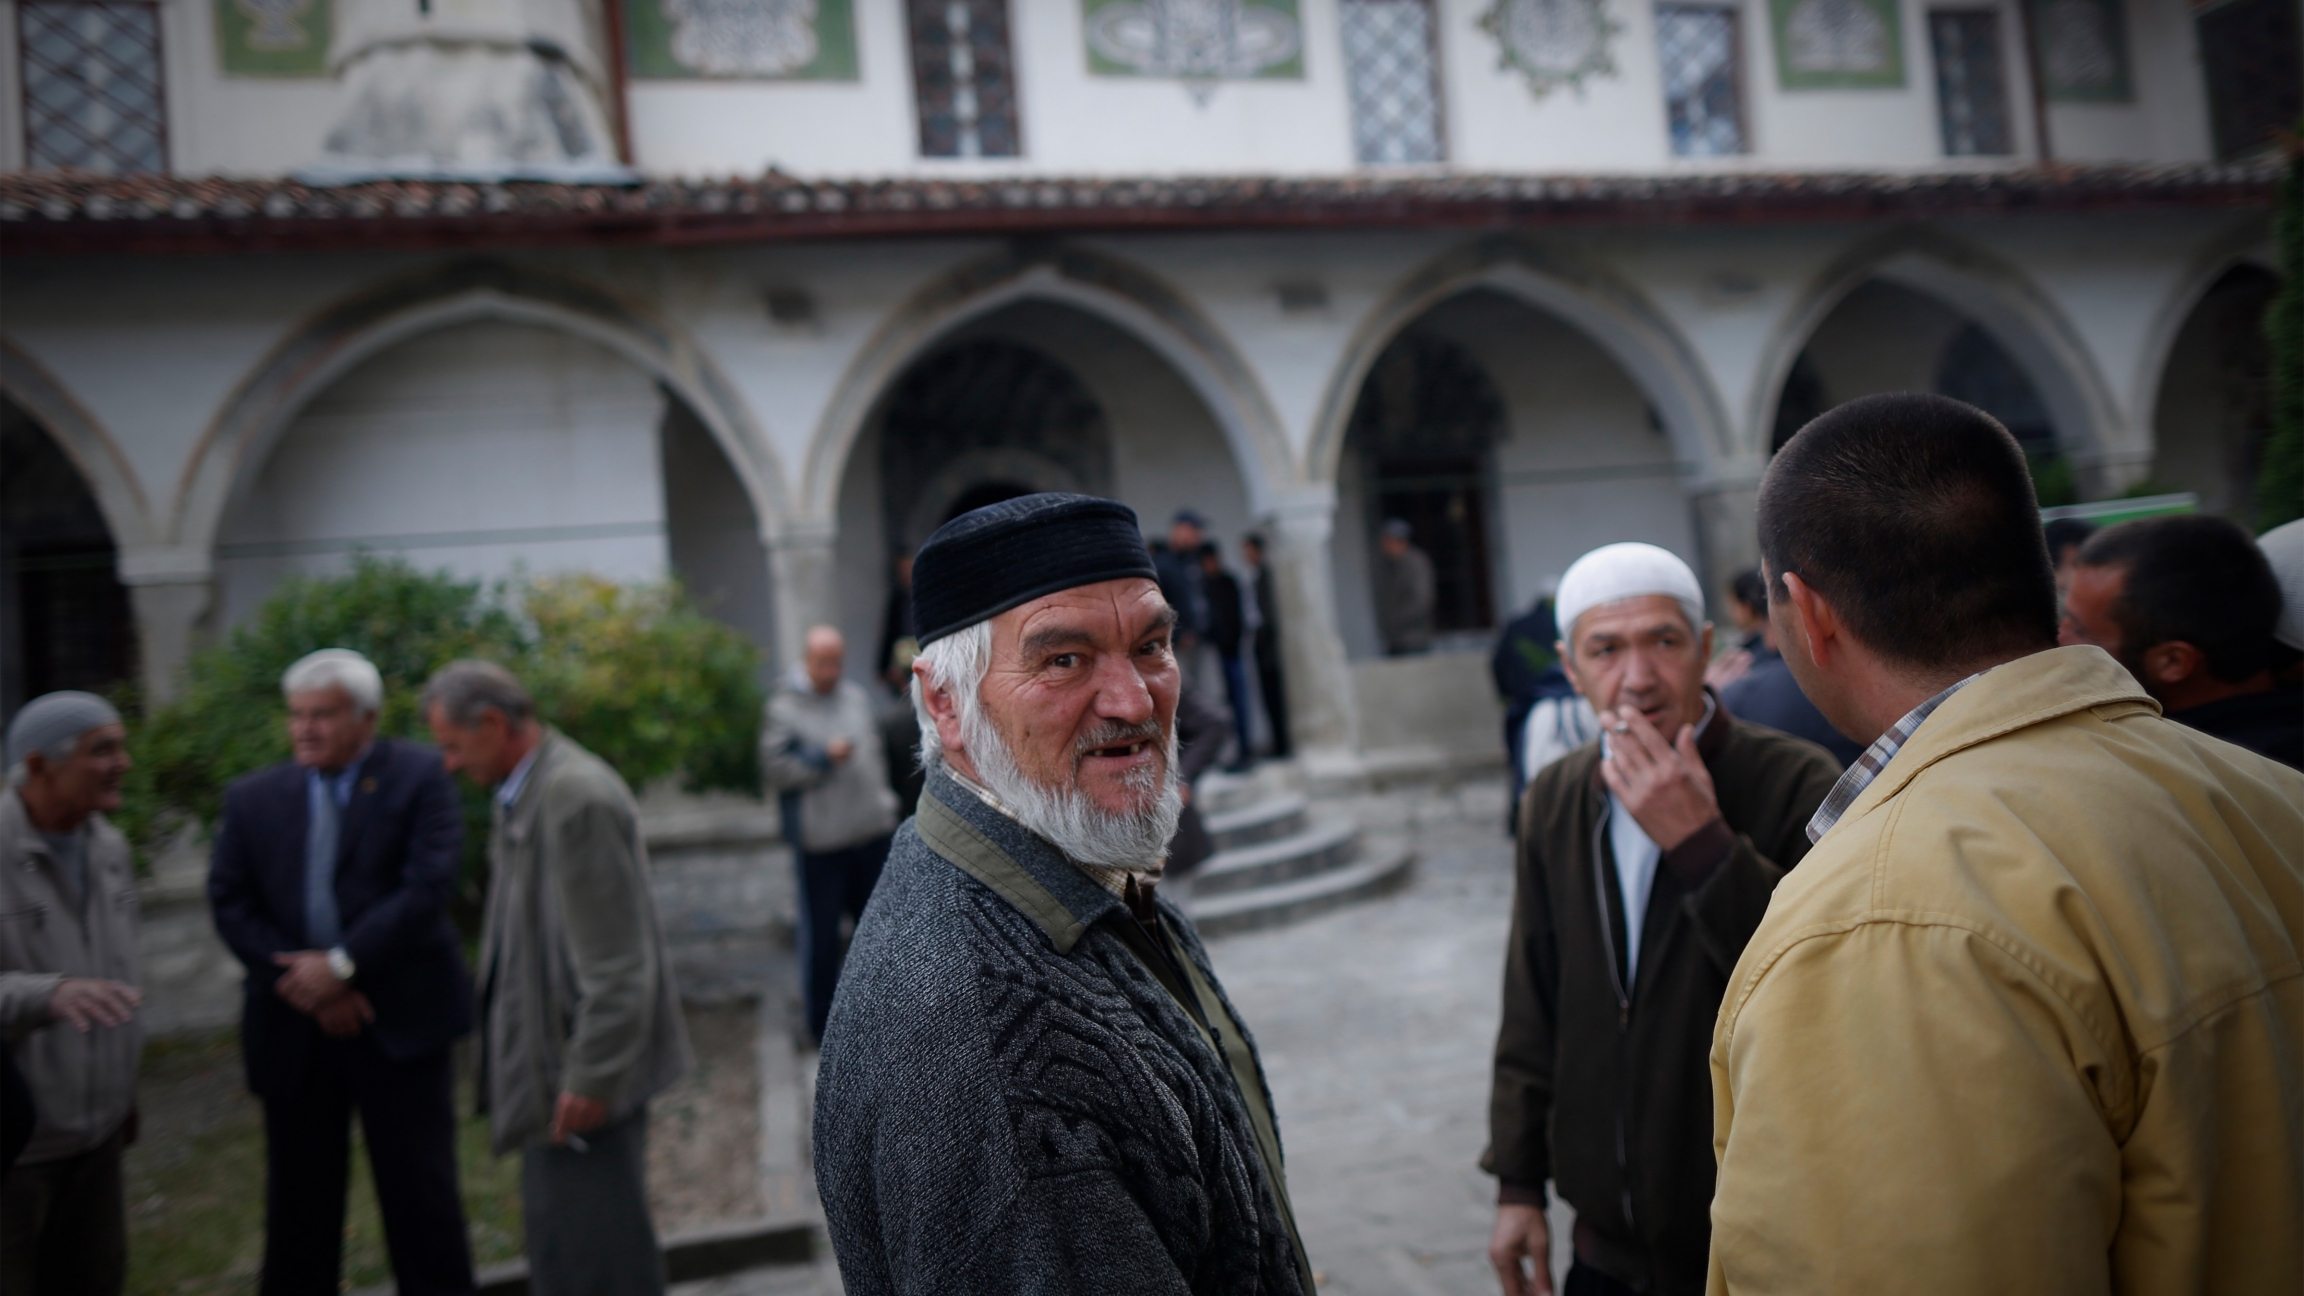 Crimean Tatars speak after the prayer in a Mosque marking the Eid al-Adha, celebrated by Muslims worldwide, in Bakhchisarai, Crimea, on Sat.Oct. 4, 2014.